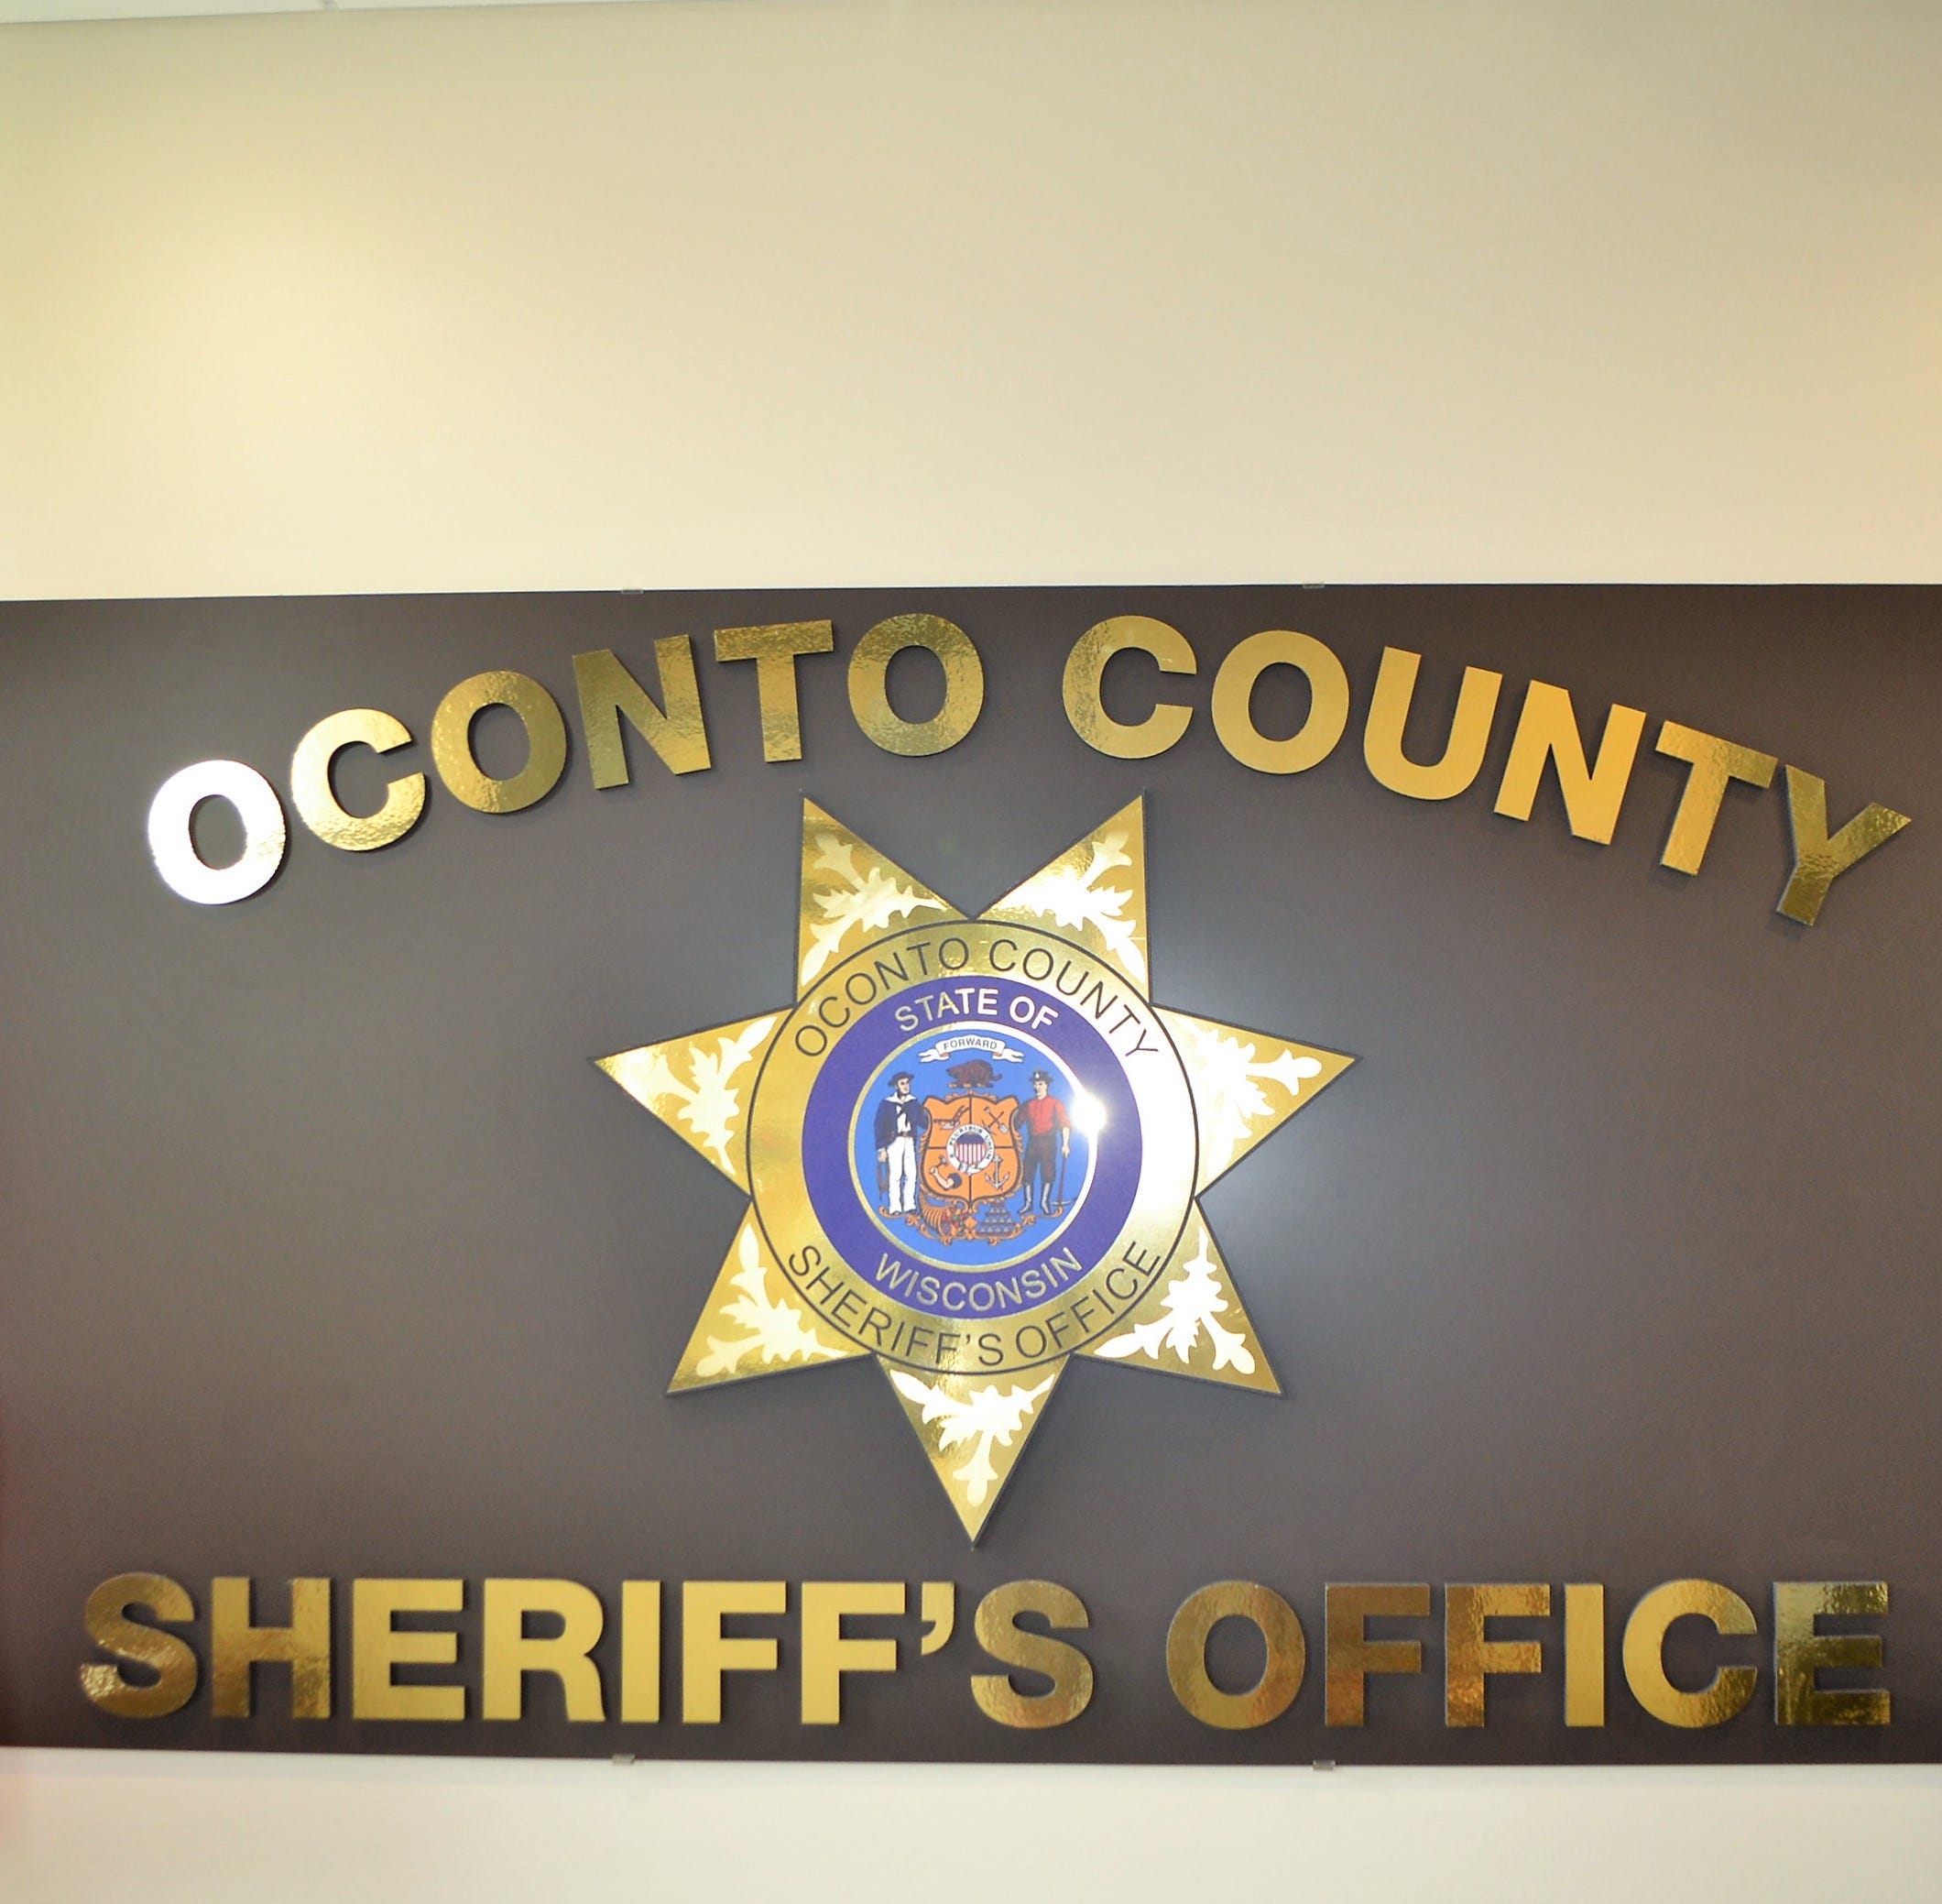 New deputy named for northern Oconto Co. towns